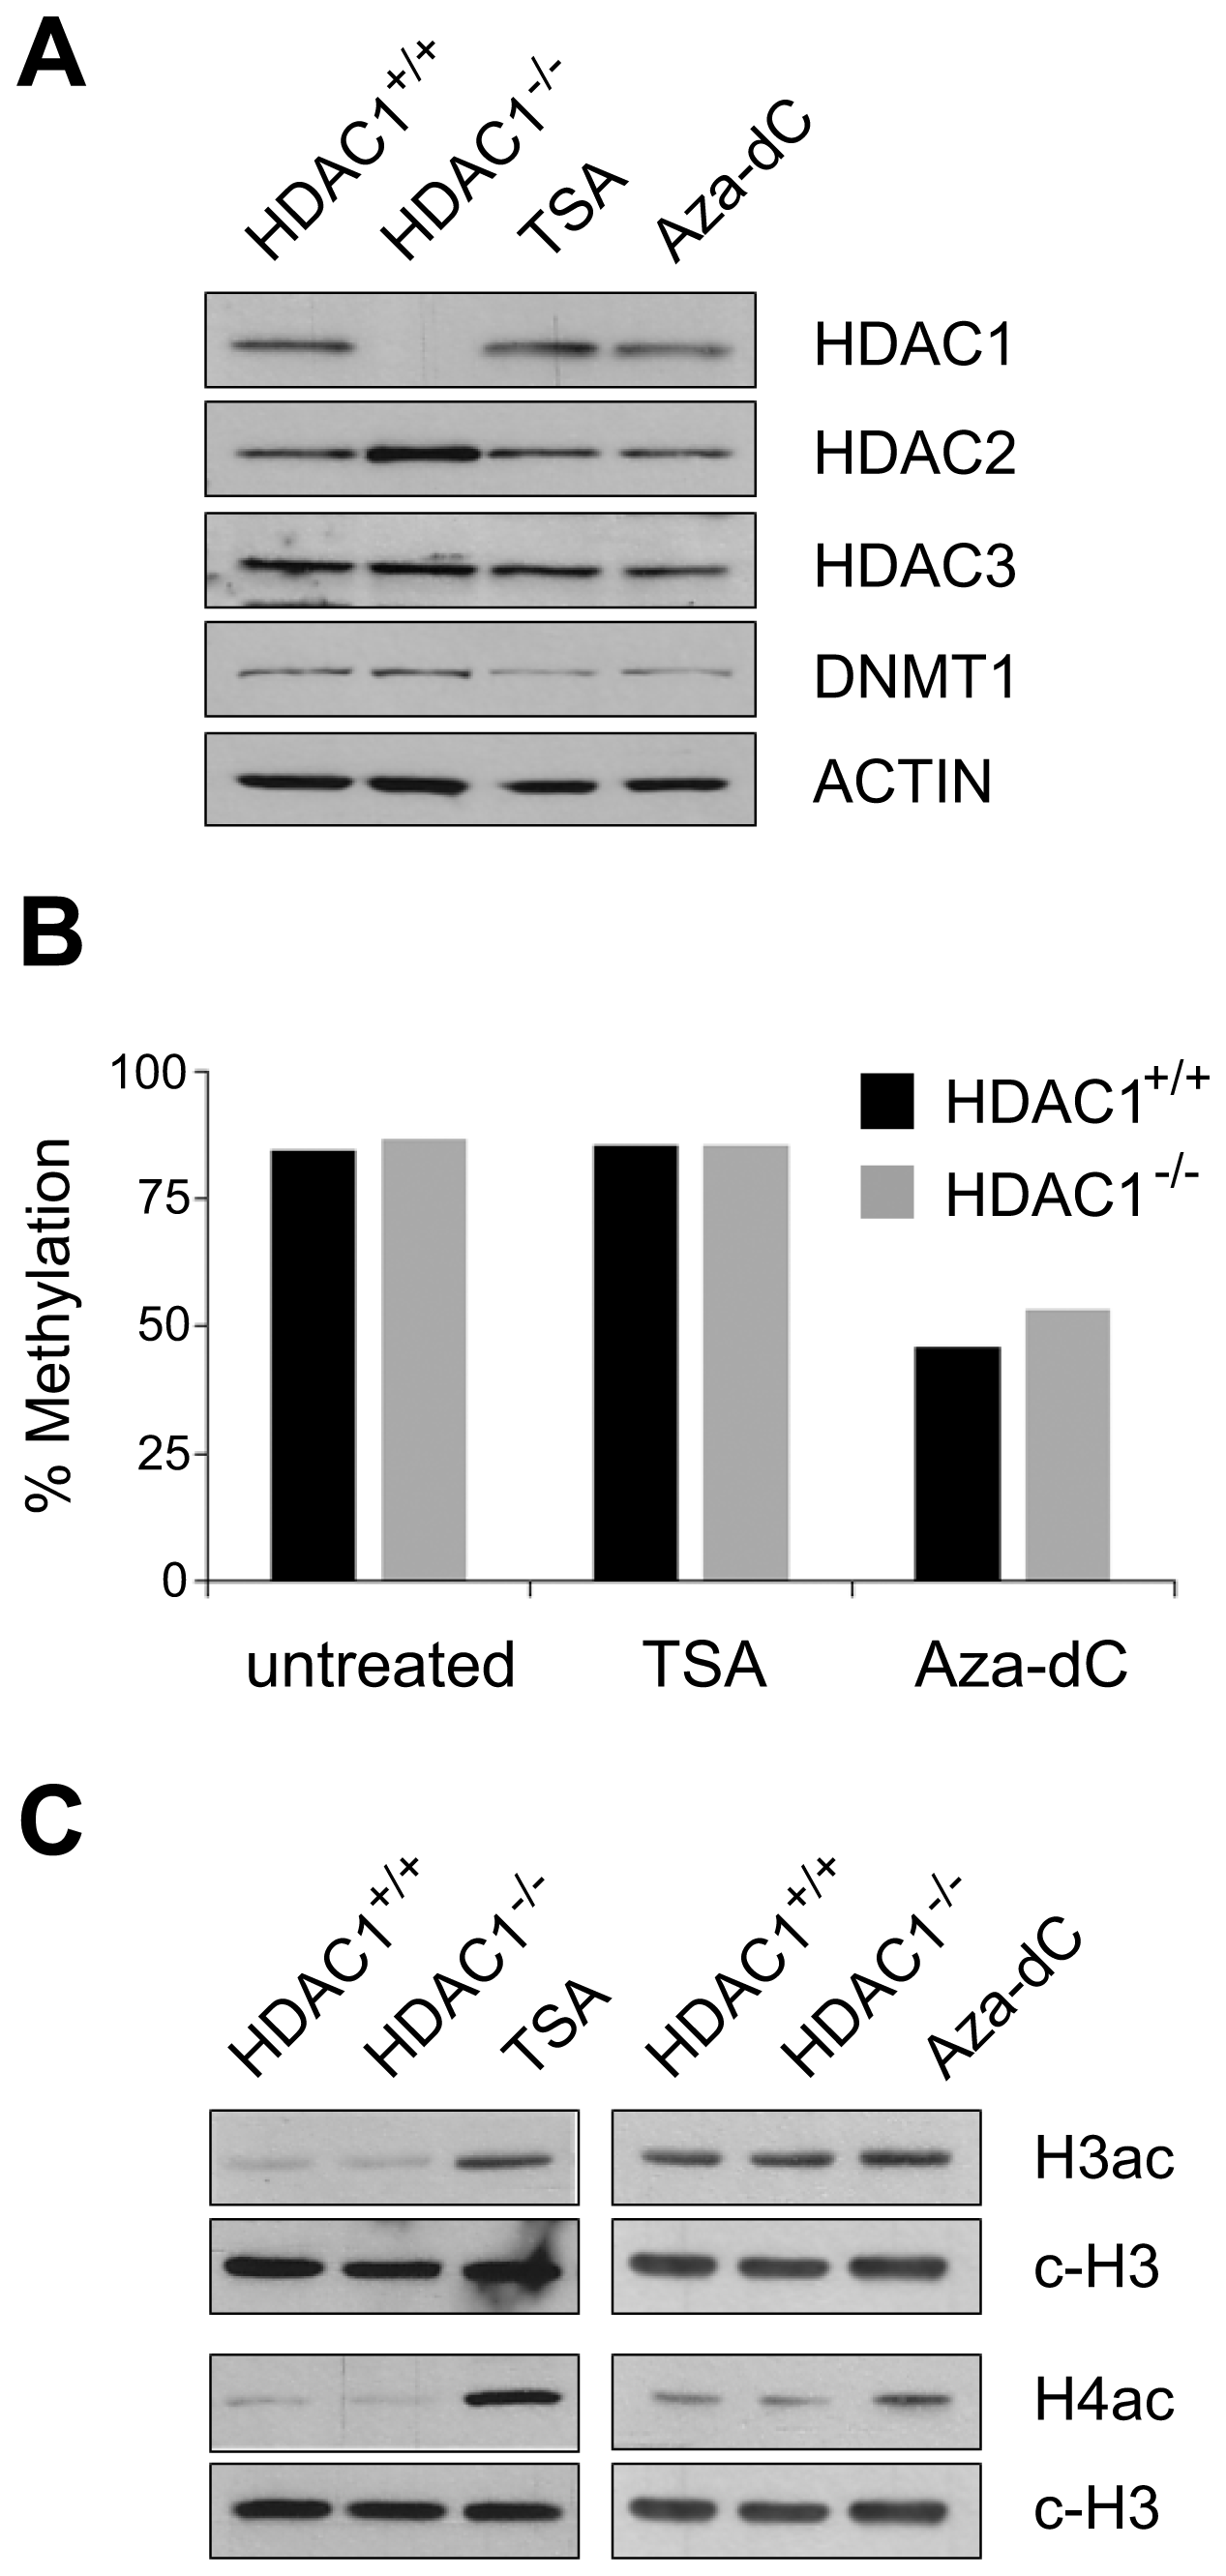 Effects of HDAC1 depletion, TSA treatment, and Aza-dC treatment on DNA–methylation and histone acetylation patterns in mouse fibroblasts.